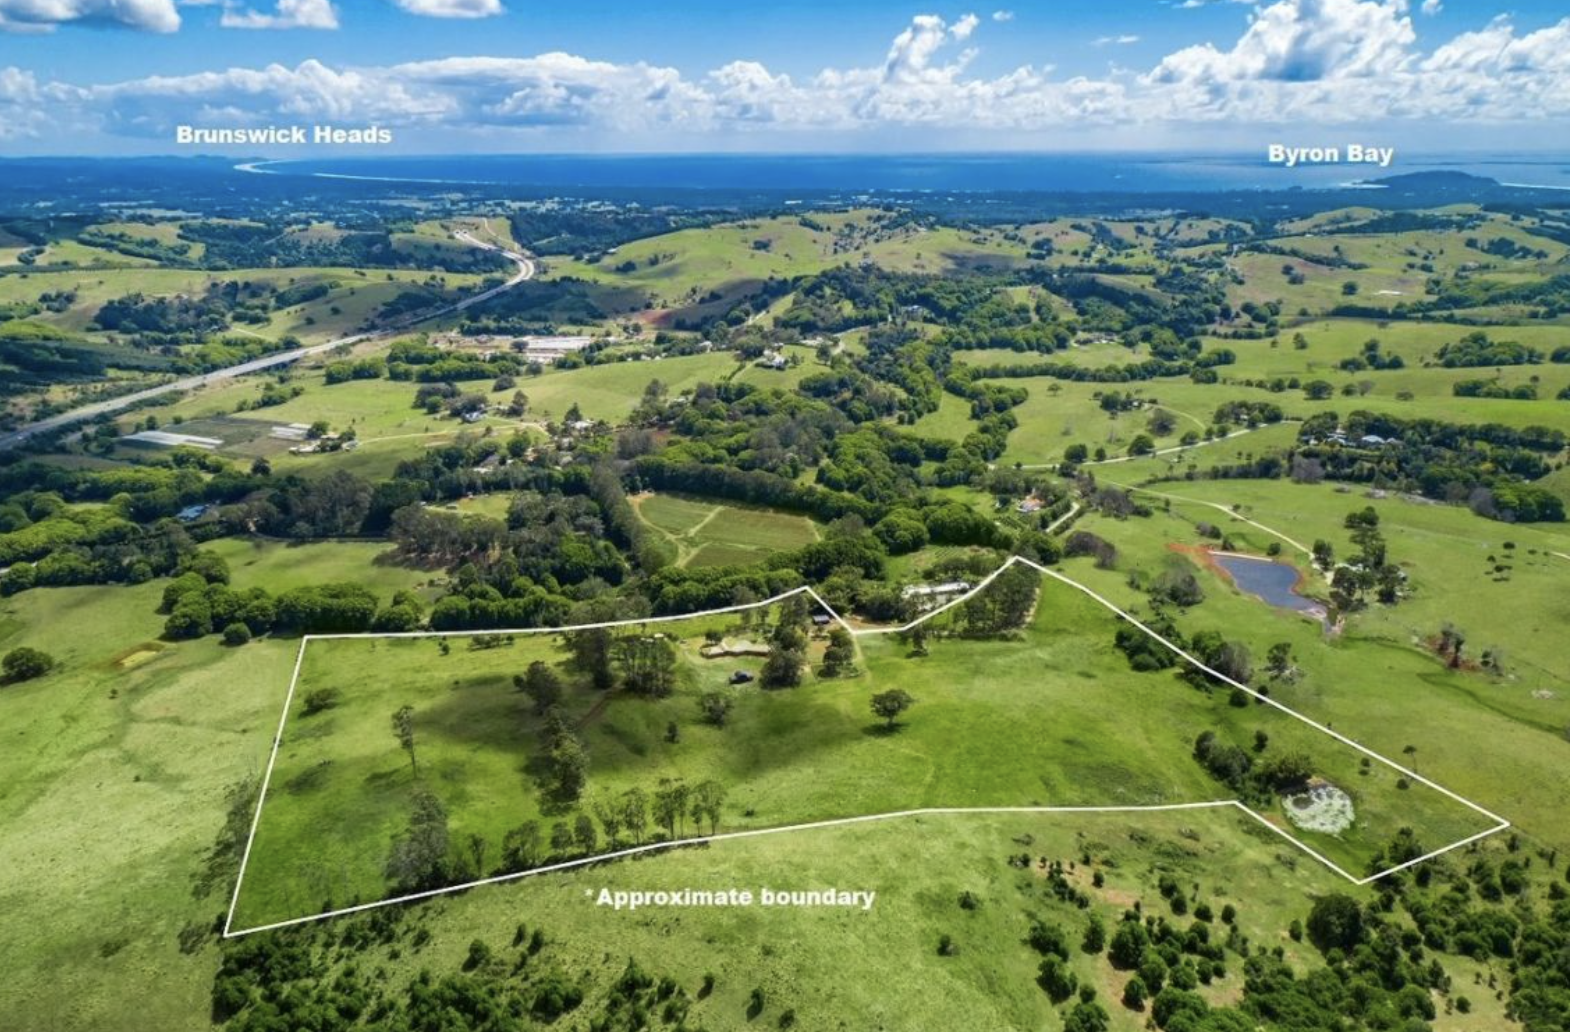 Private Byron Bay Hinterland AirBnb Opportunity Awaits